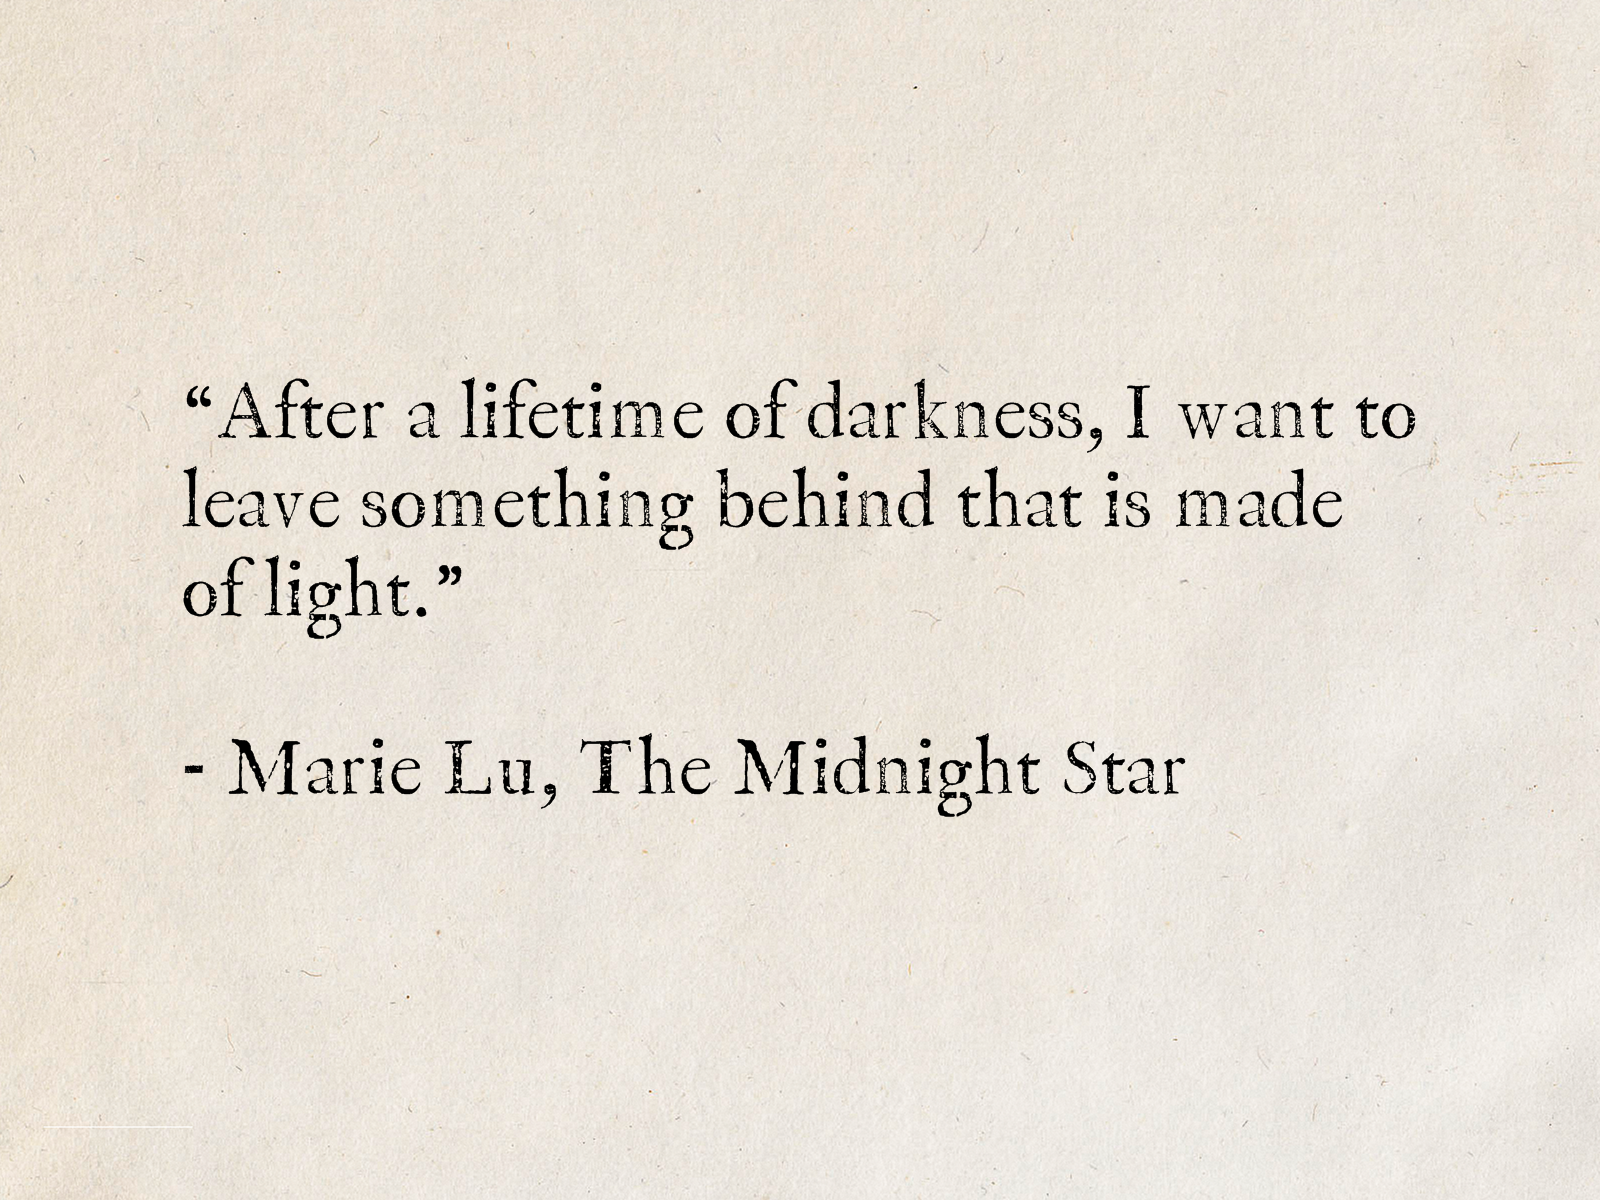 """""""After a lifetime of darkness, I want to leave something behind that is made of light."""" - Marie Lu, The Midnight Star (The Young Elites series) #quotes #fantasy #books #MarieLu #TheYoungElites"""